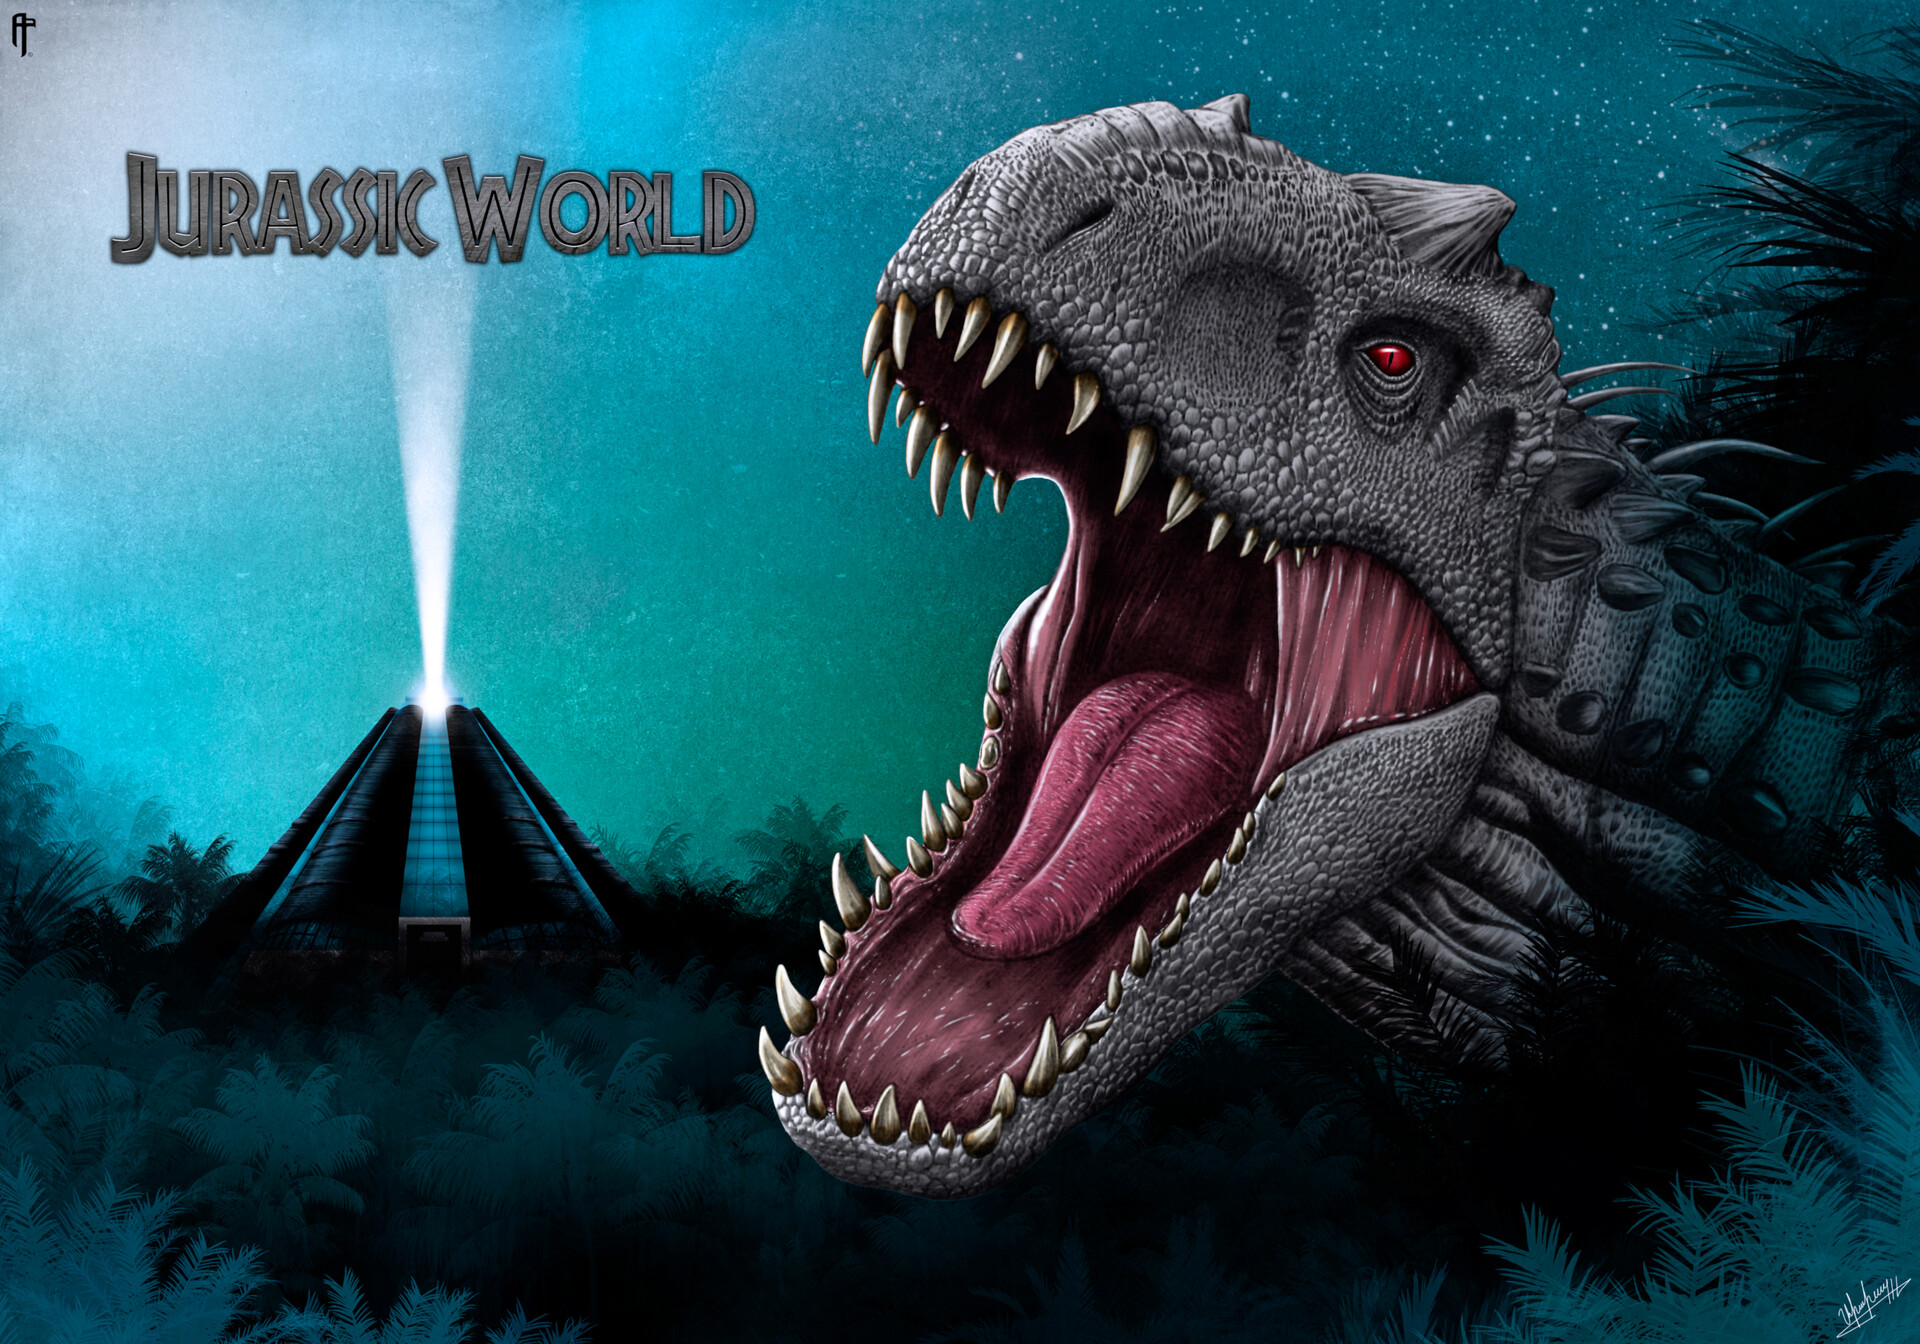 Aram Papazyan Jurassic World 2015 Digital Poster